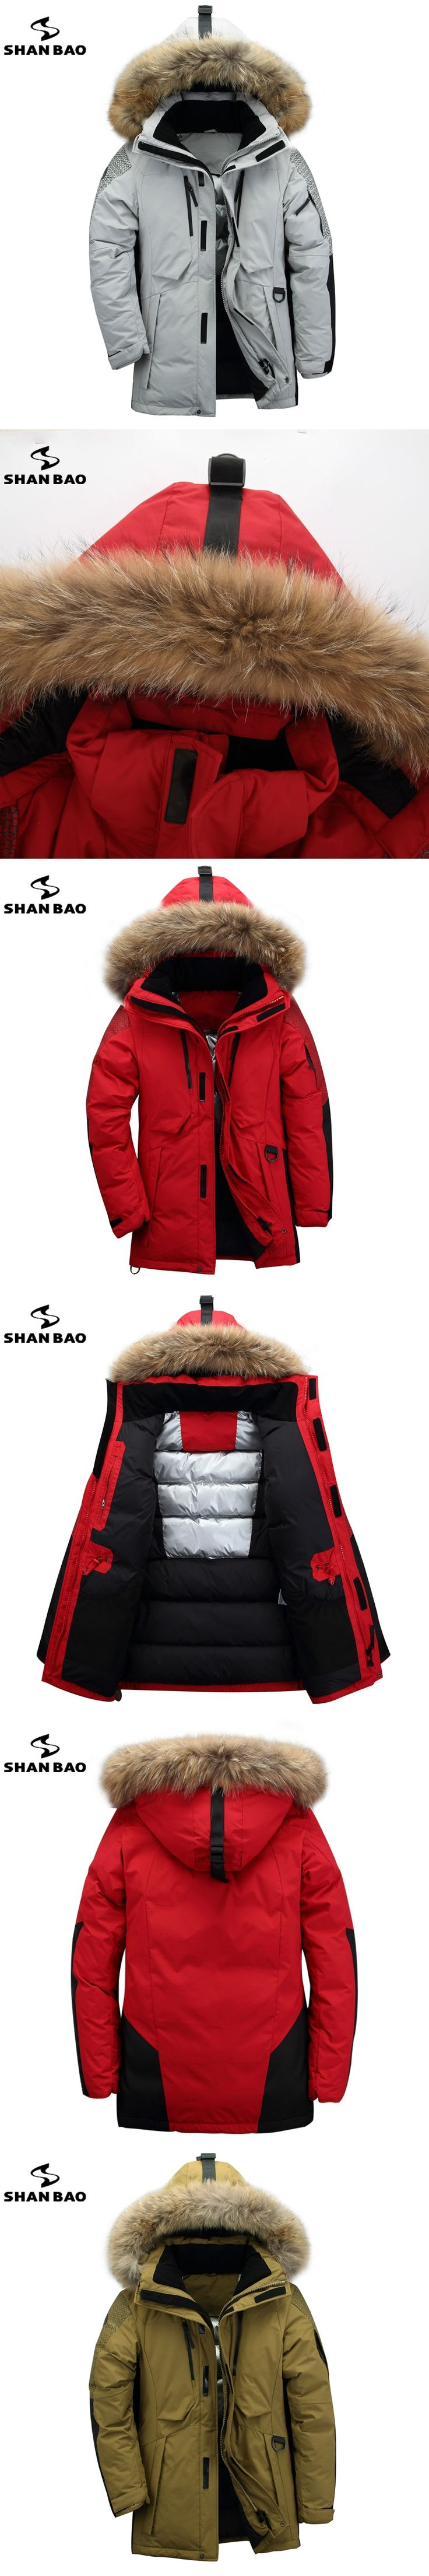 Men's brand hooded down jacket 2017 winter luxury high quality clothing thickening warm fur Russian down jacket red black gray'